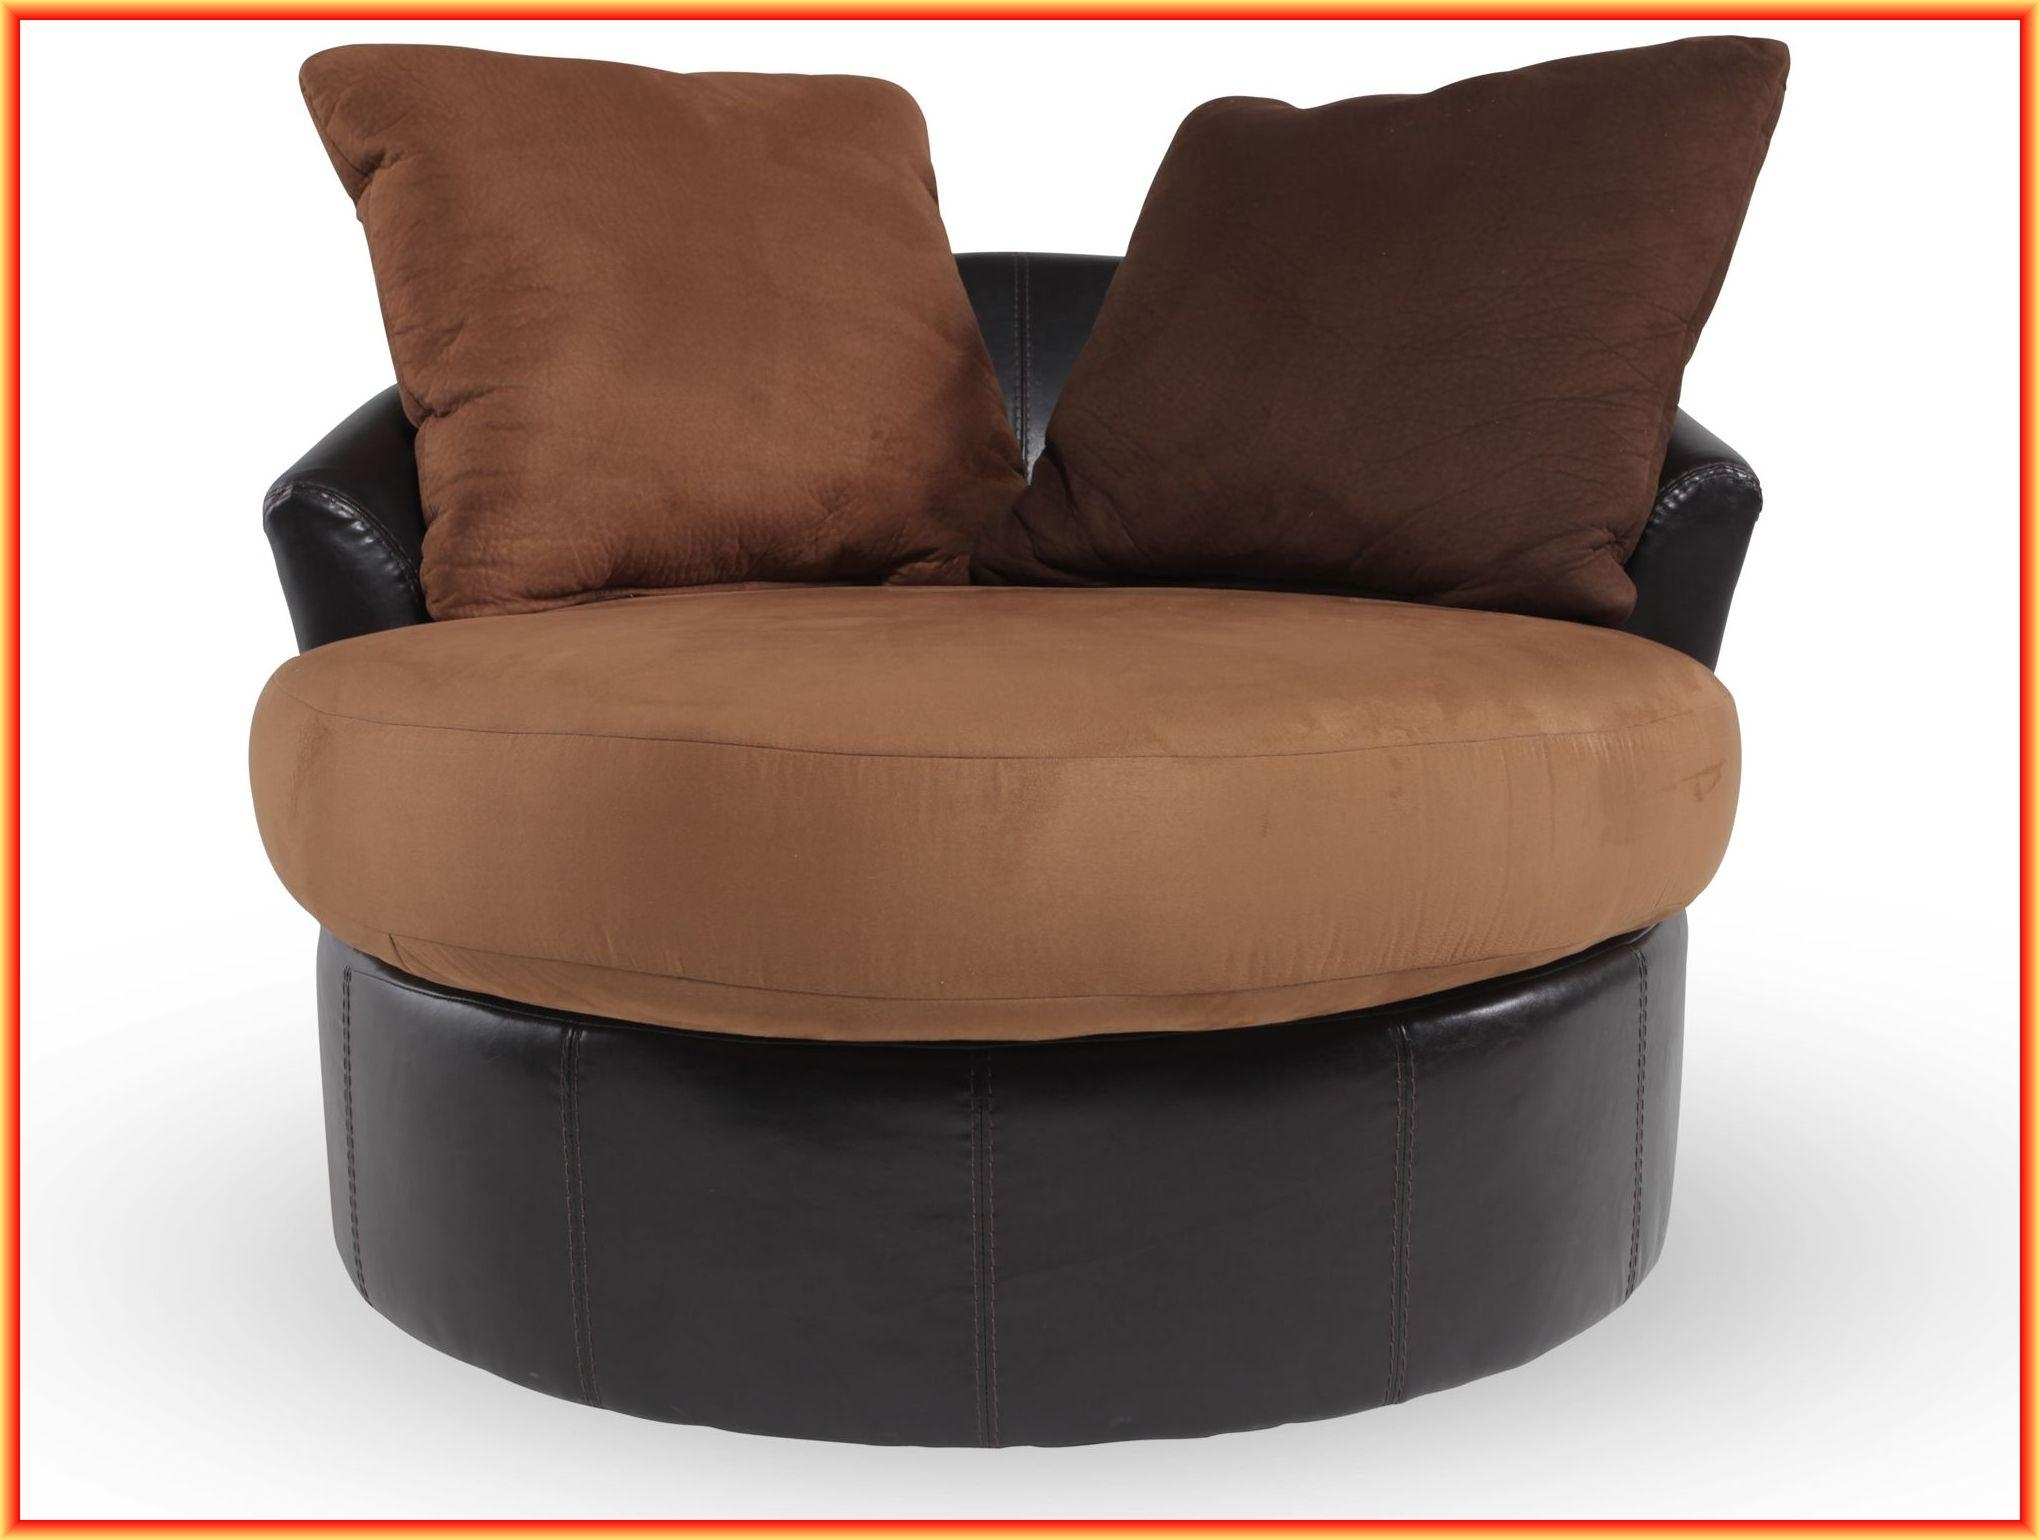 Round Swivel Chairs For Living Room For Round Sofa Chair Living Room Furniture (View 19 of 20)